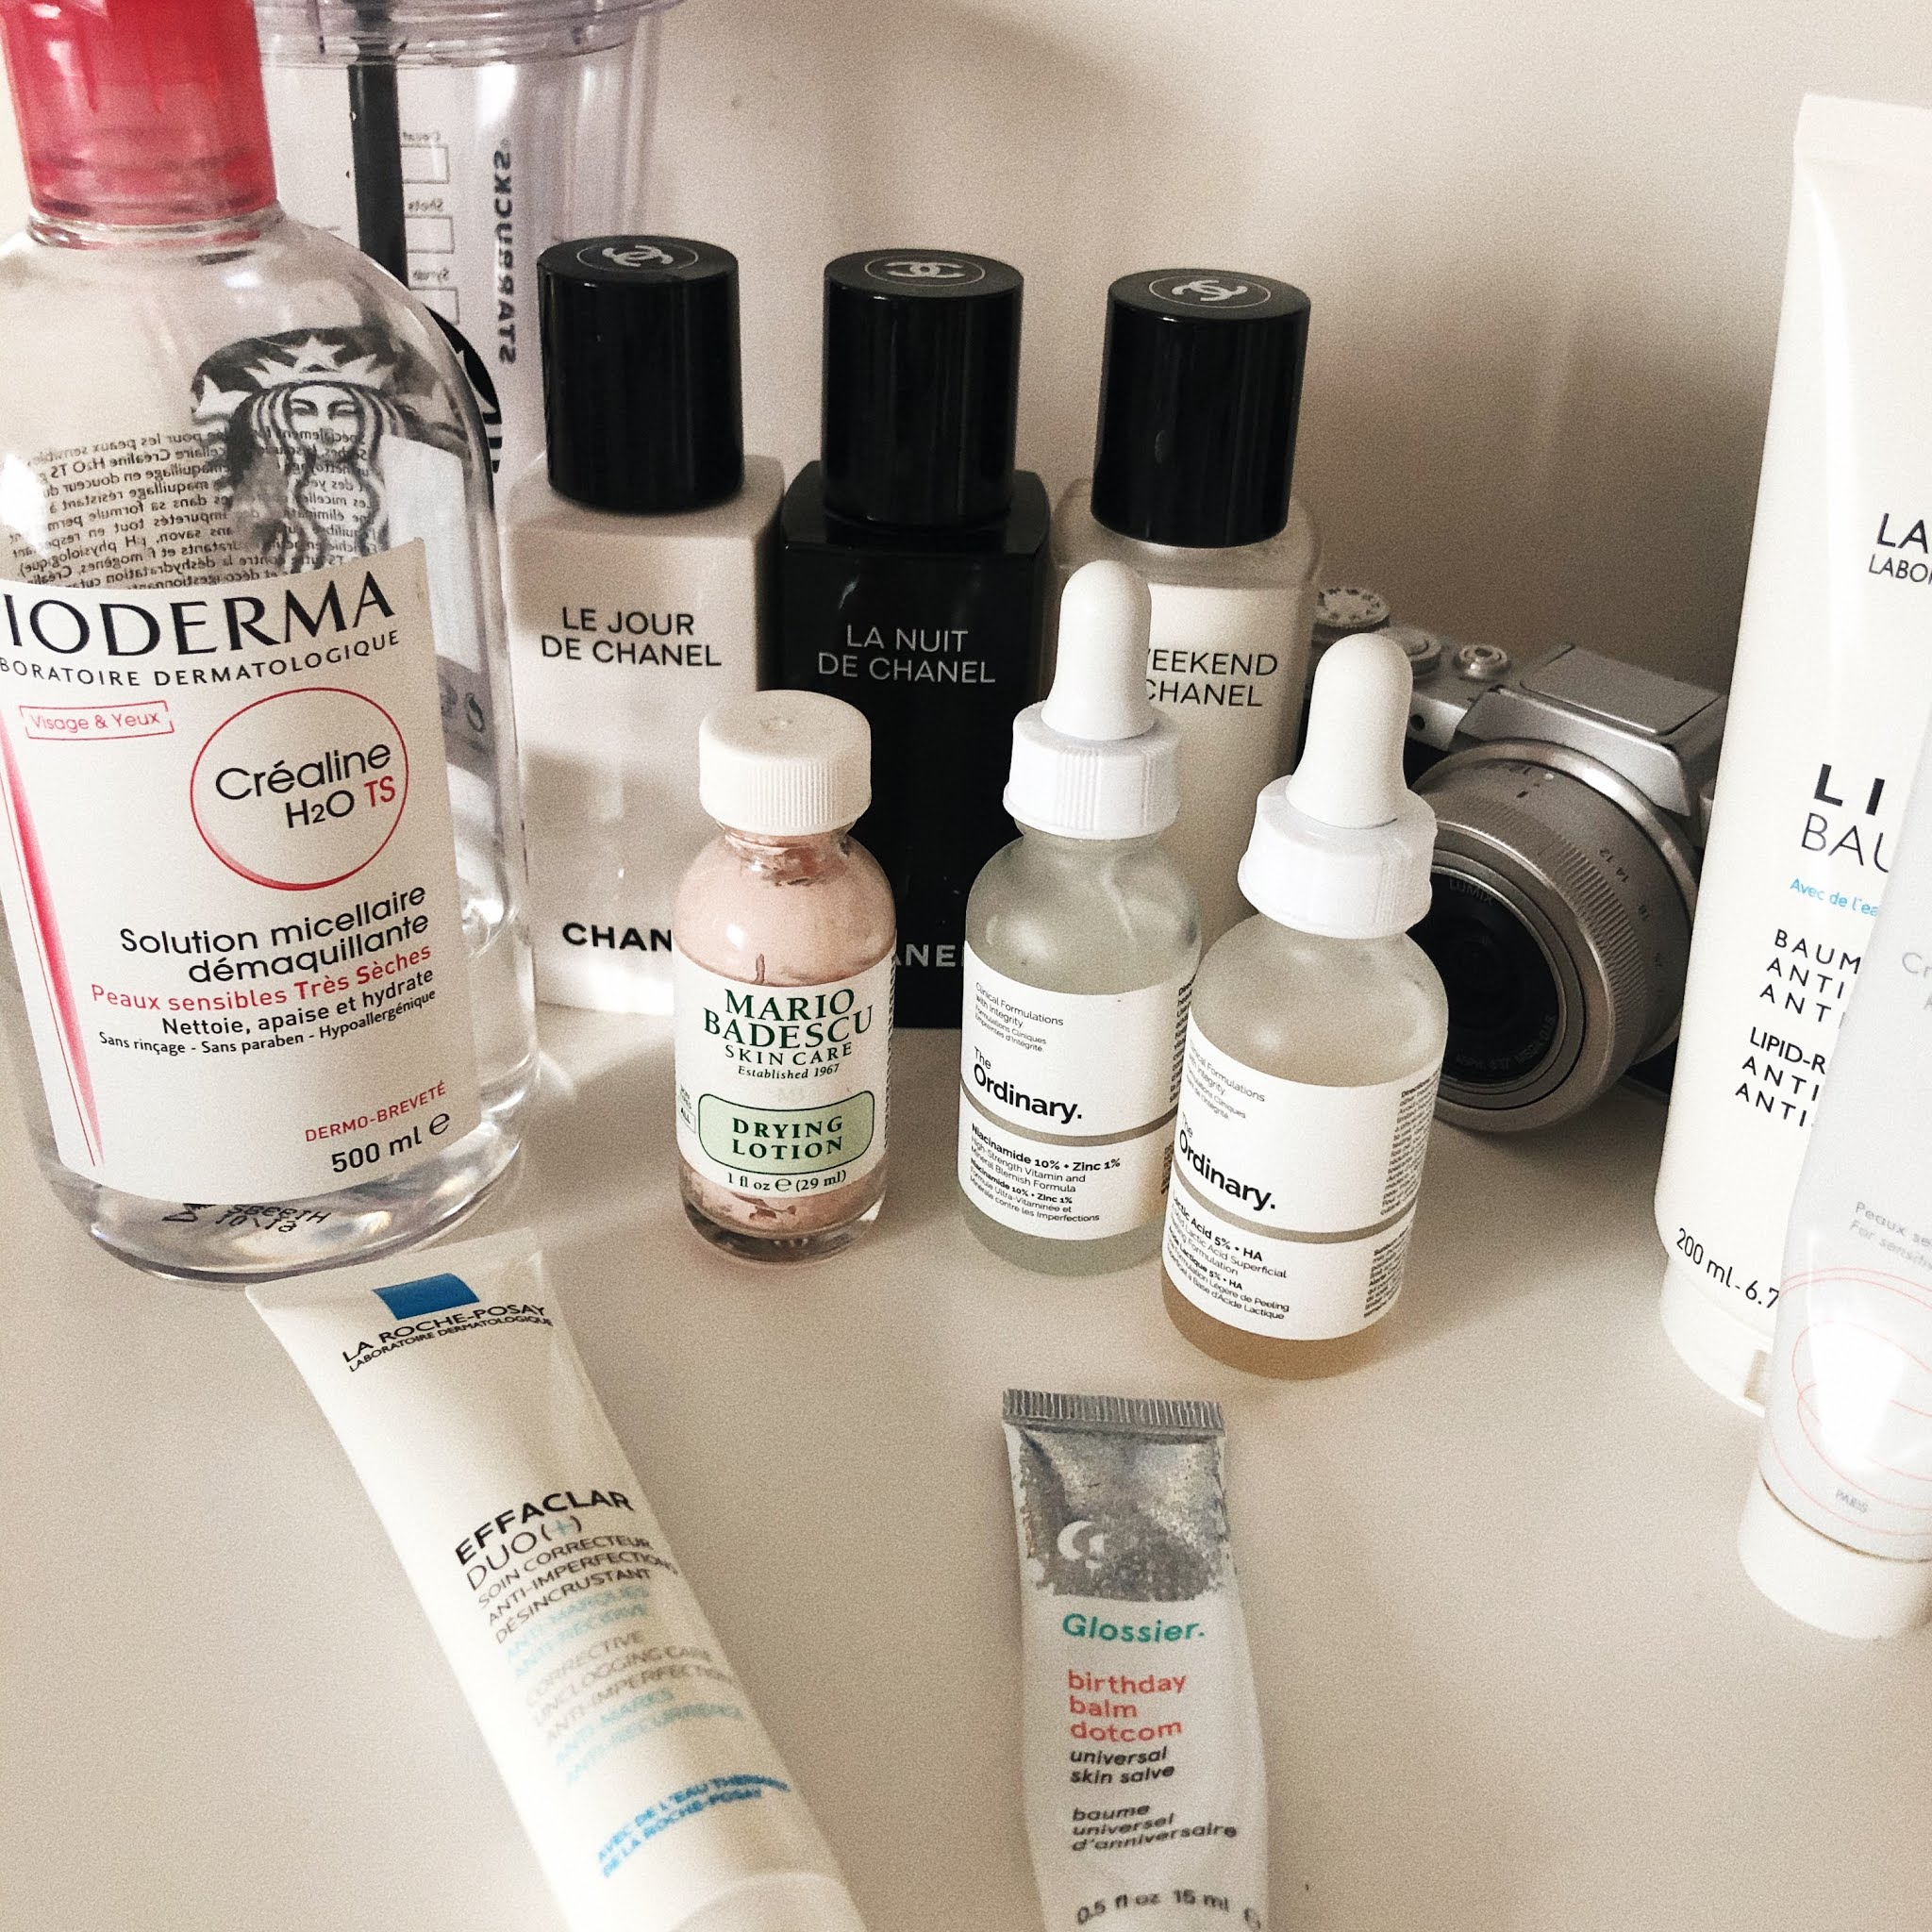 French Pharmacy Skincare Routine for Acne prone Skin